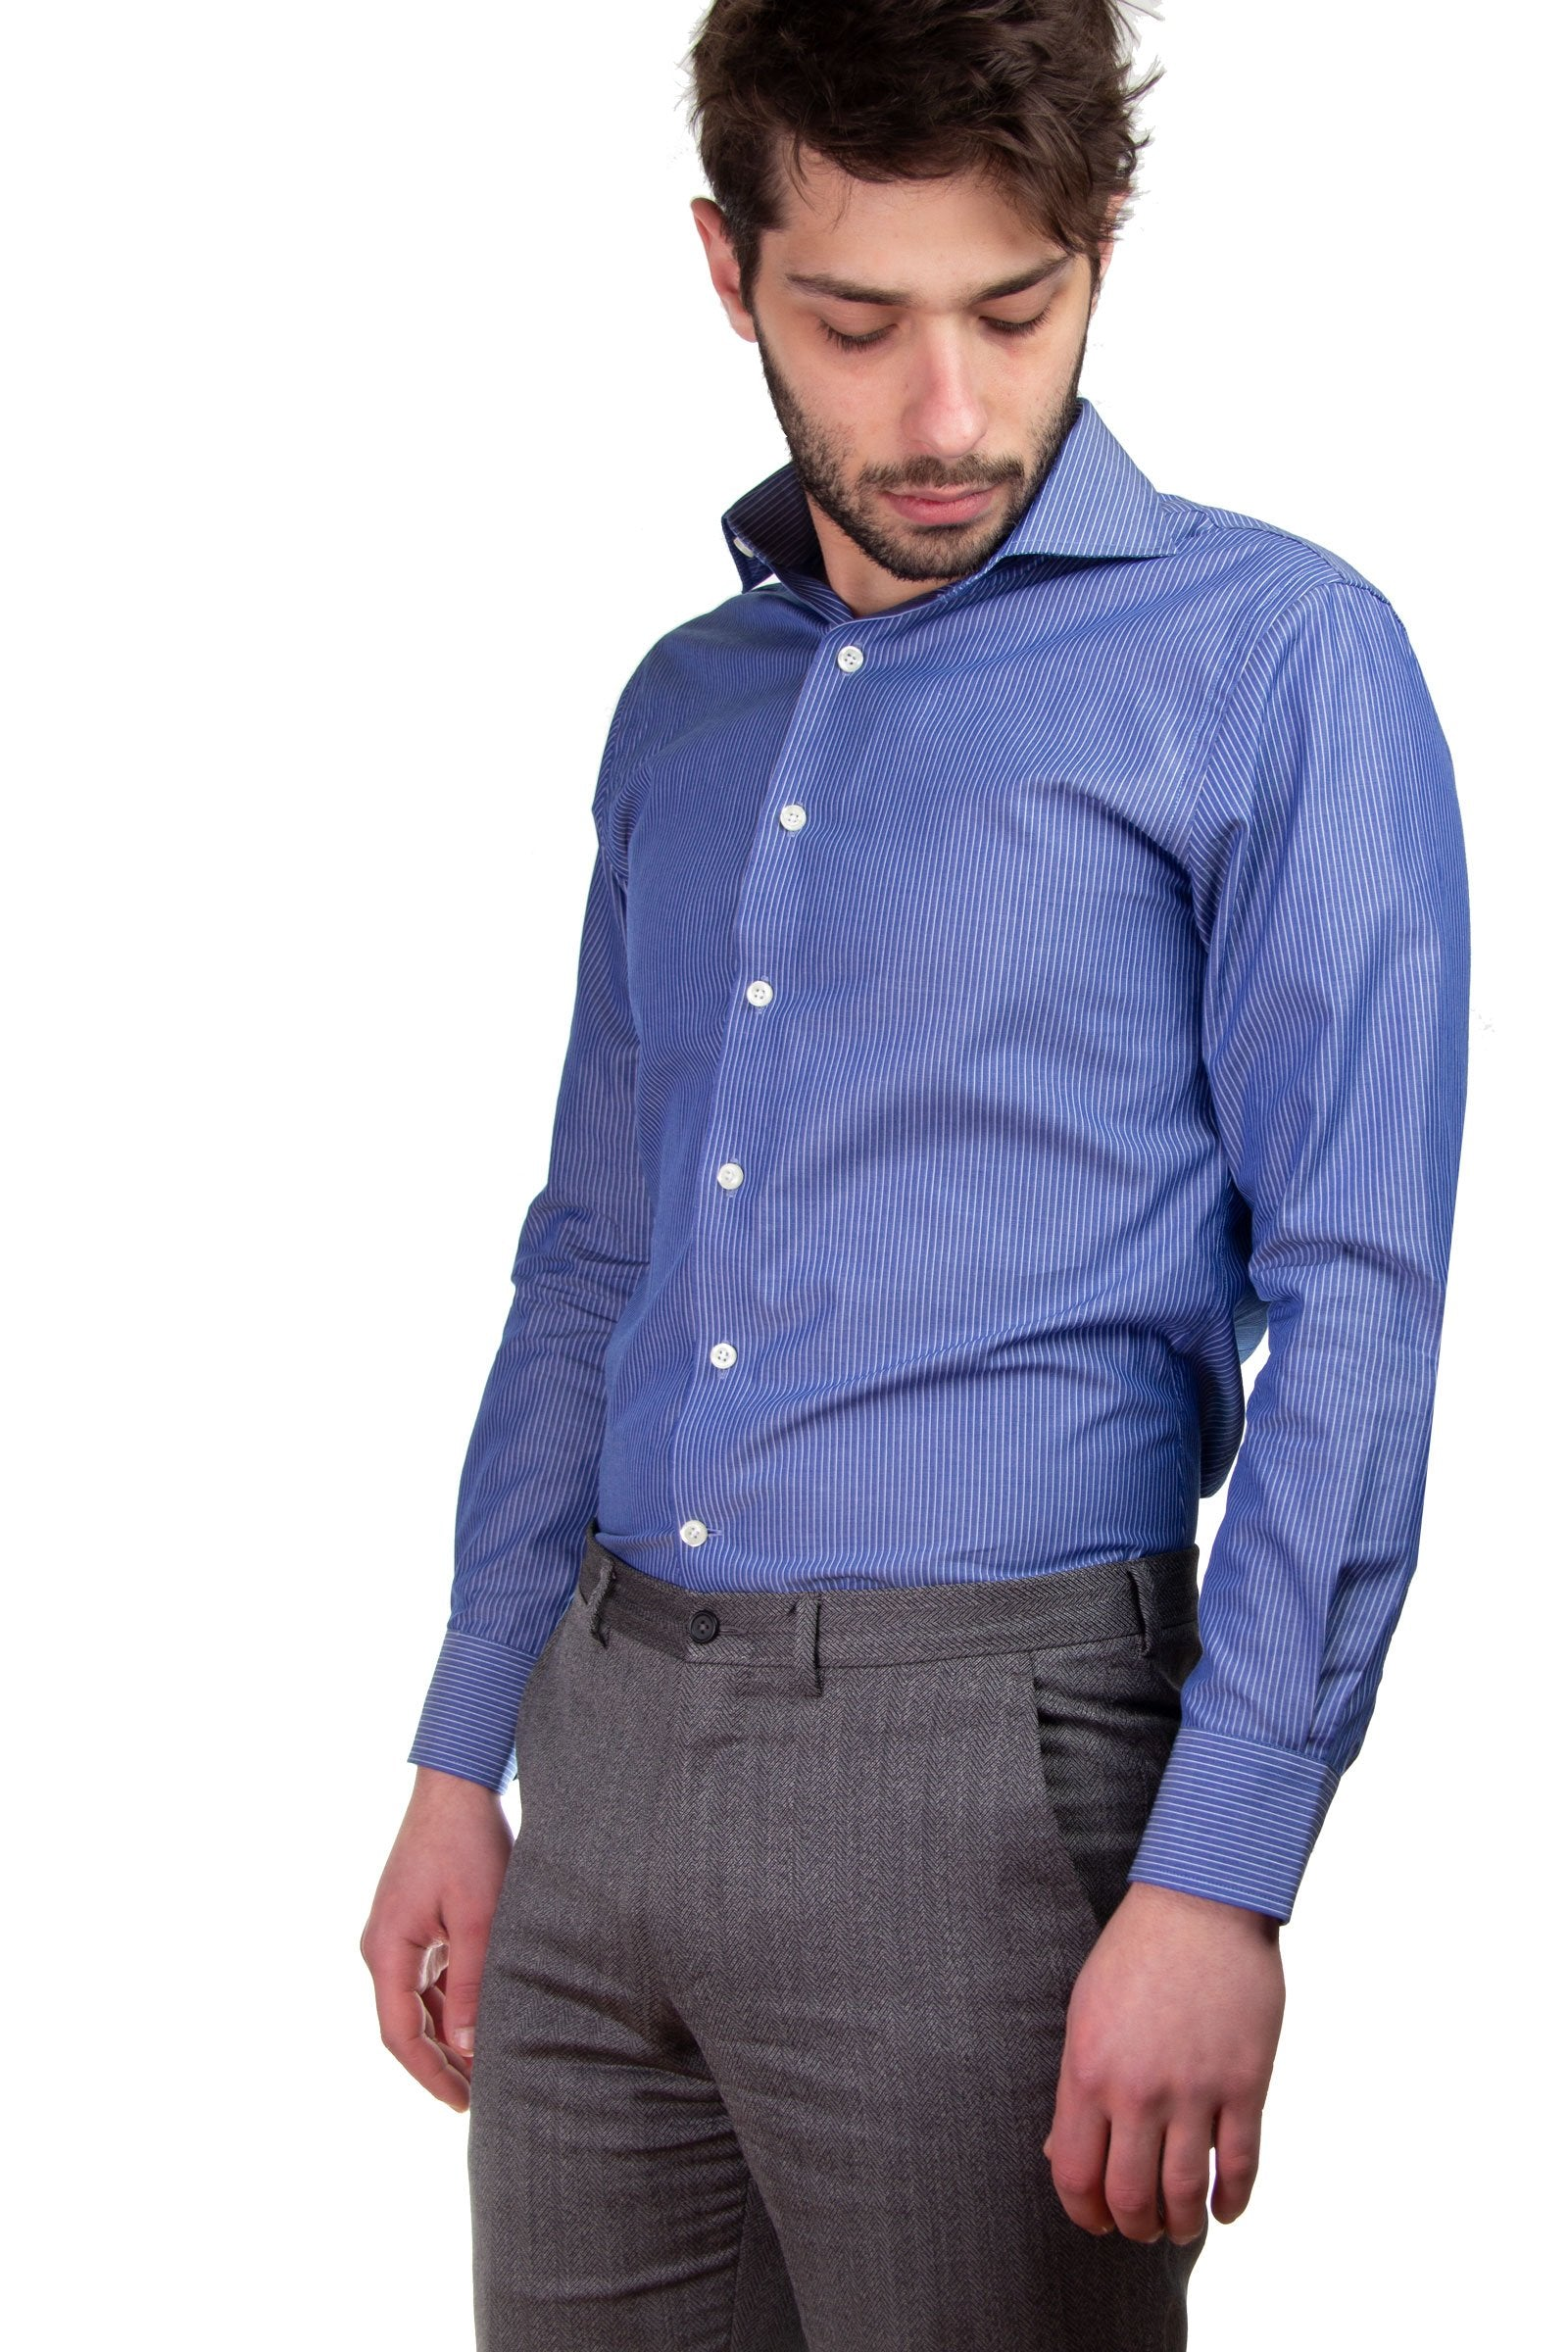 Pinstripe Blue Dress Shirt